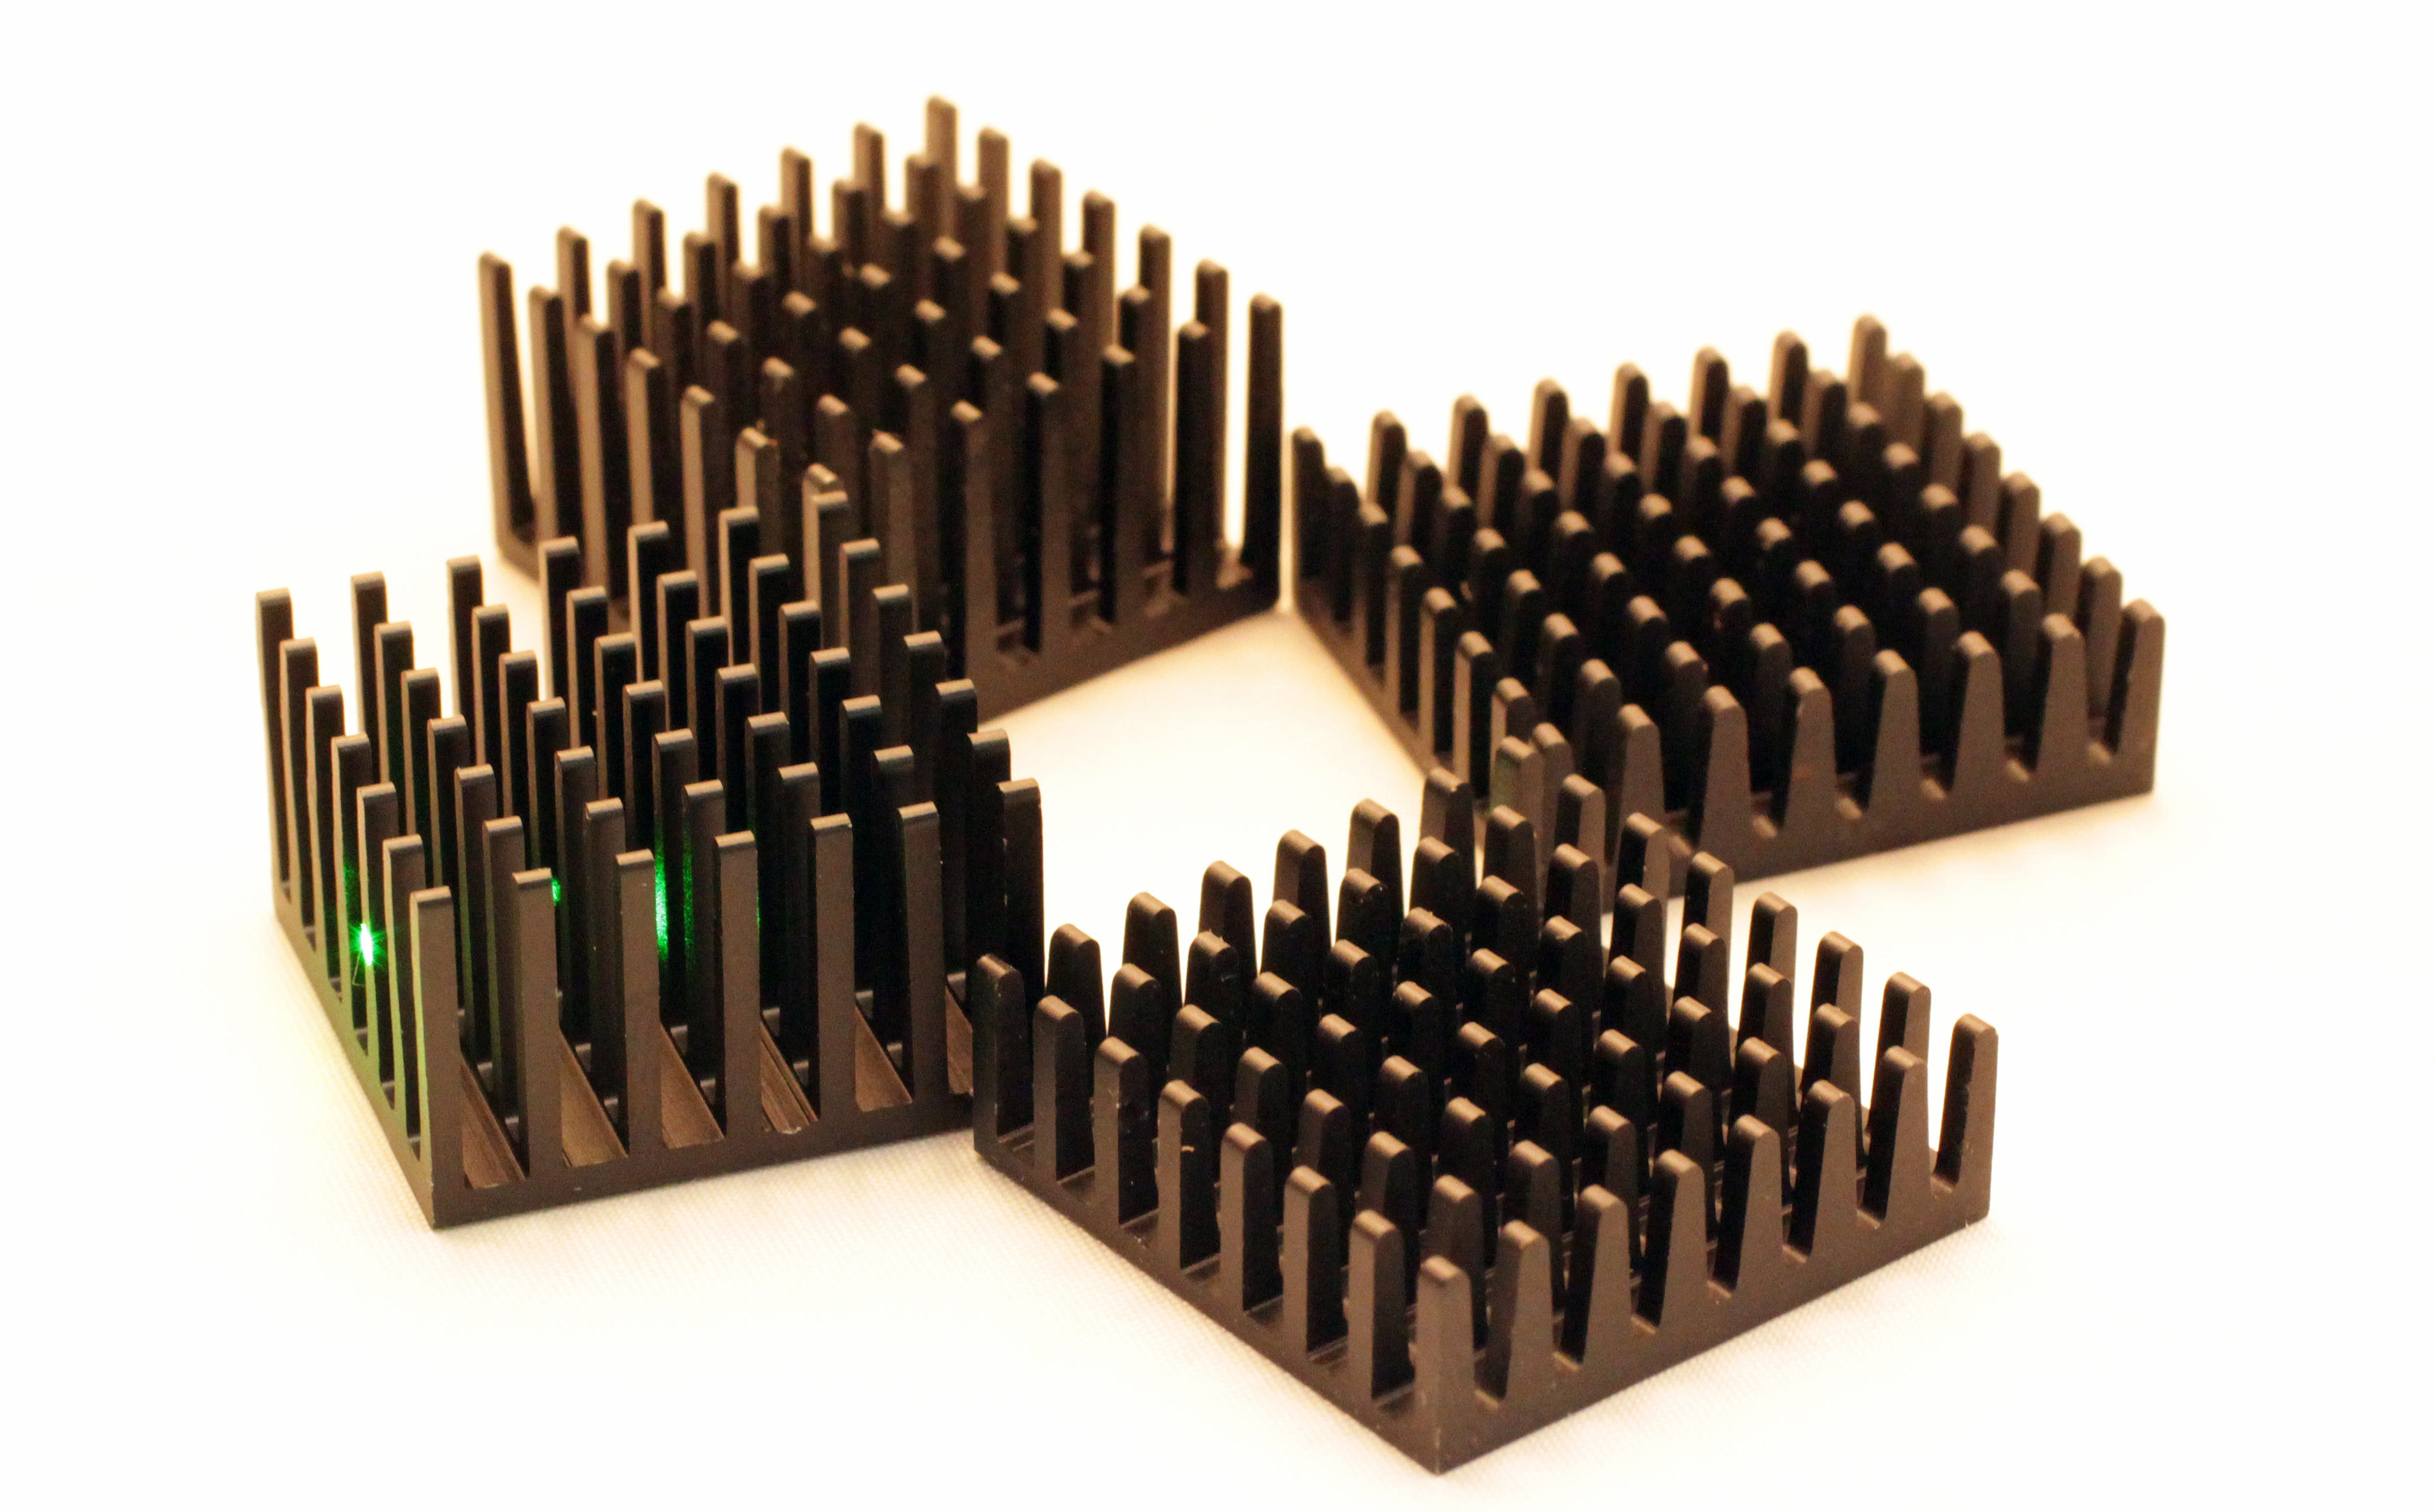 Heat Sinks Provide Cost-Effective Solutions at High Airflow